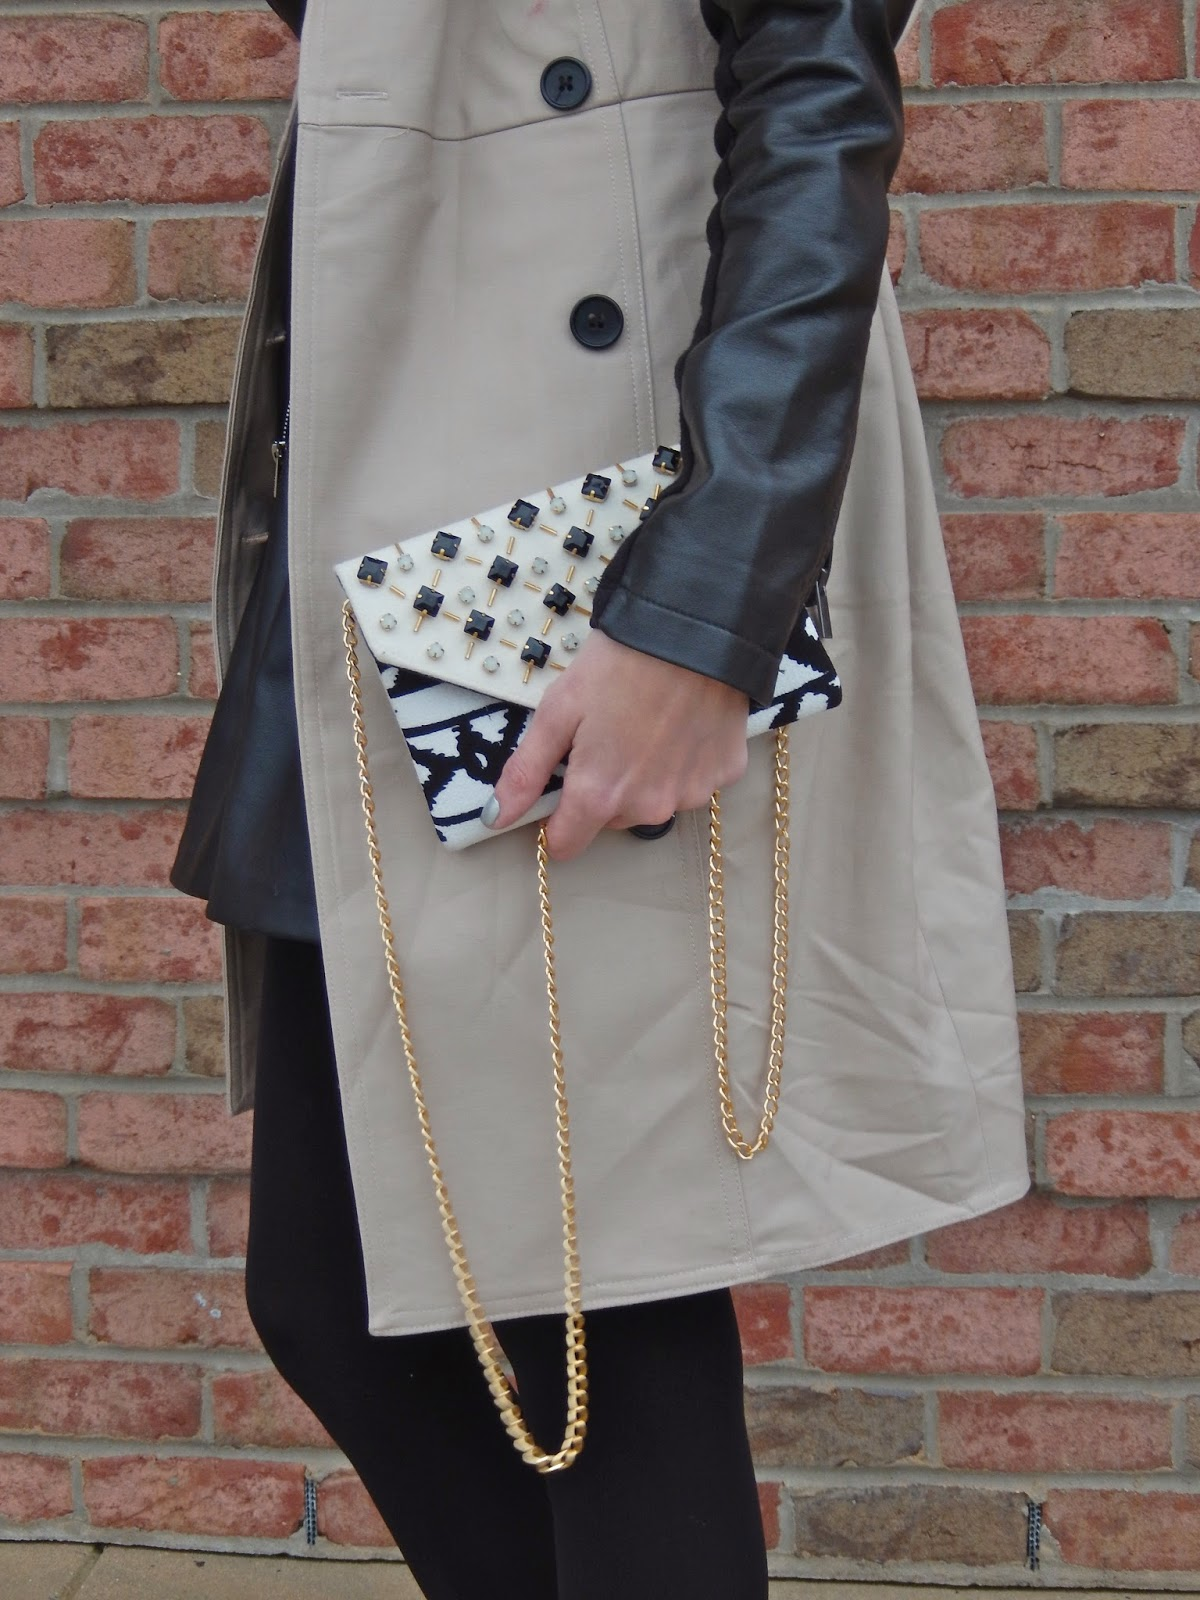 Ann Taylor Sleeveless Tench Coat, Express Leather Jacket, Anjolee Tennis Bracelet, Rainy Day Dress Up Look